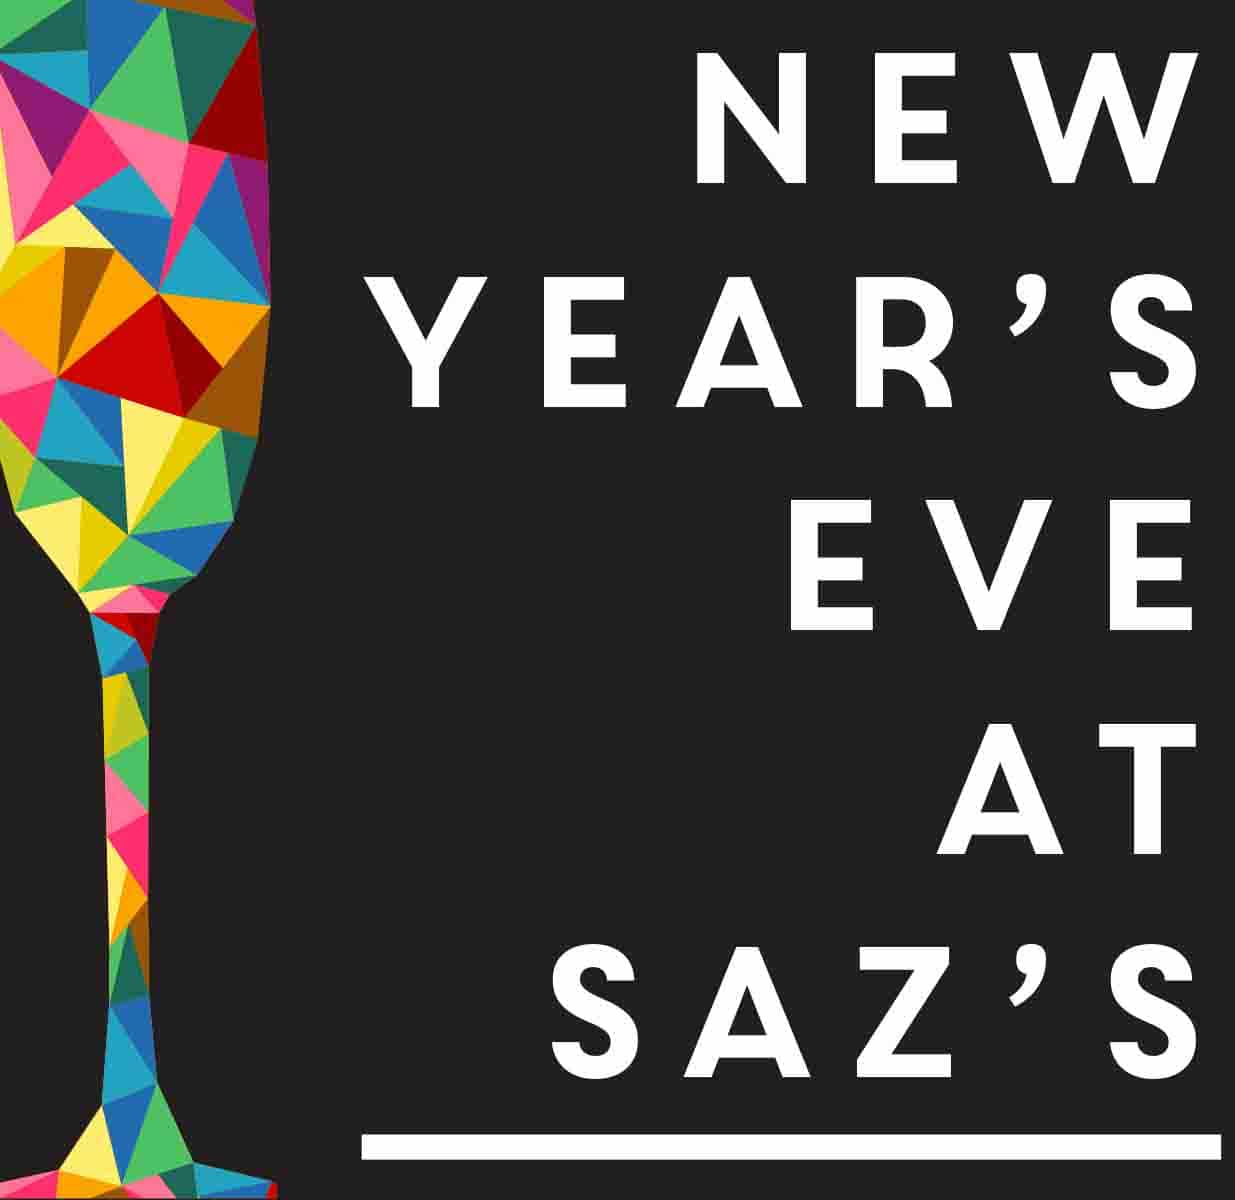 New Year's Eve 2015 At Saz's State House